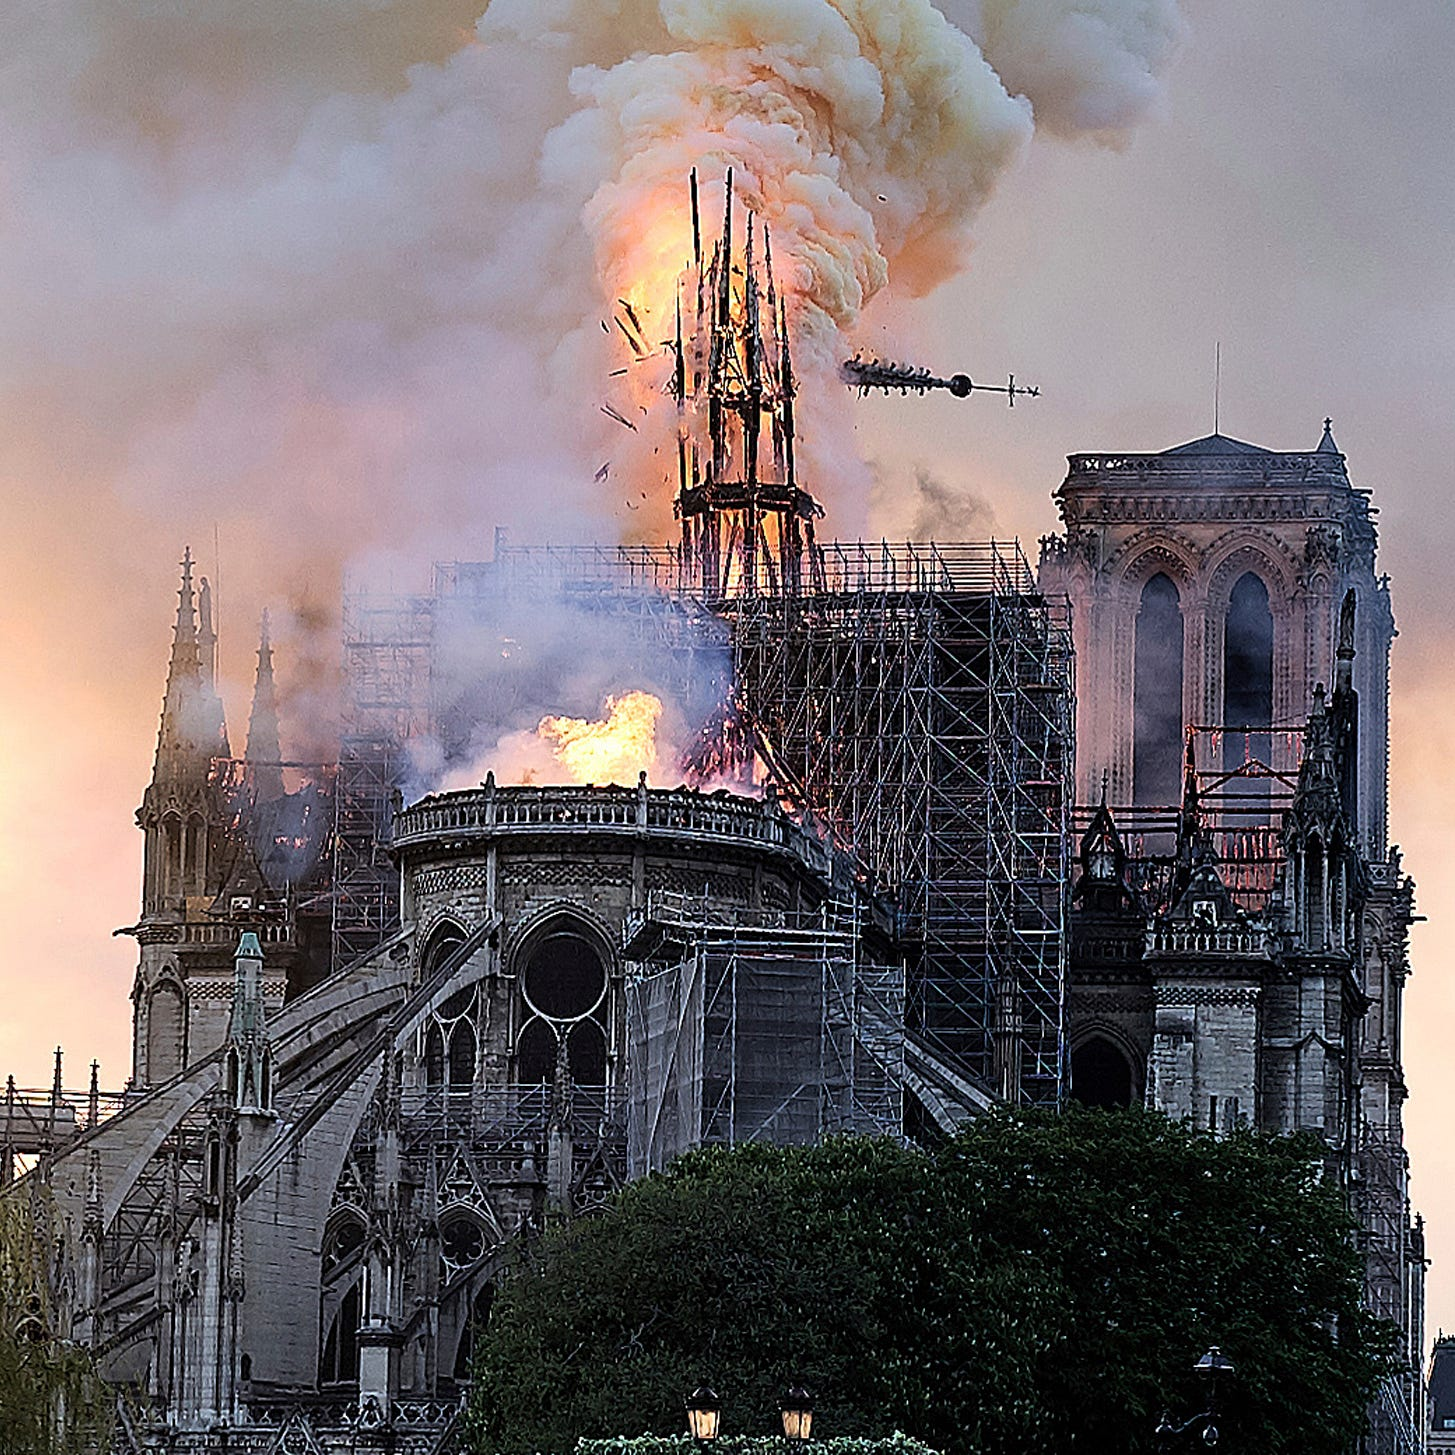 Macron calls on world's 'greatest talents' to rebuild Notre Dame Cathedral